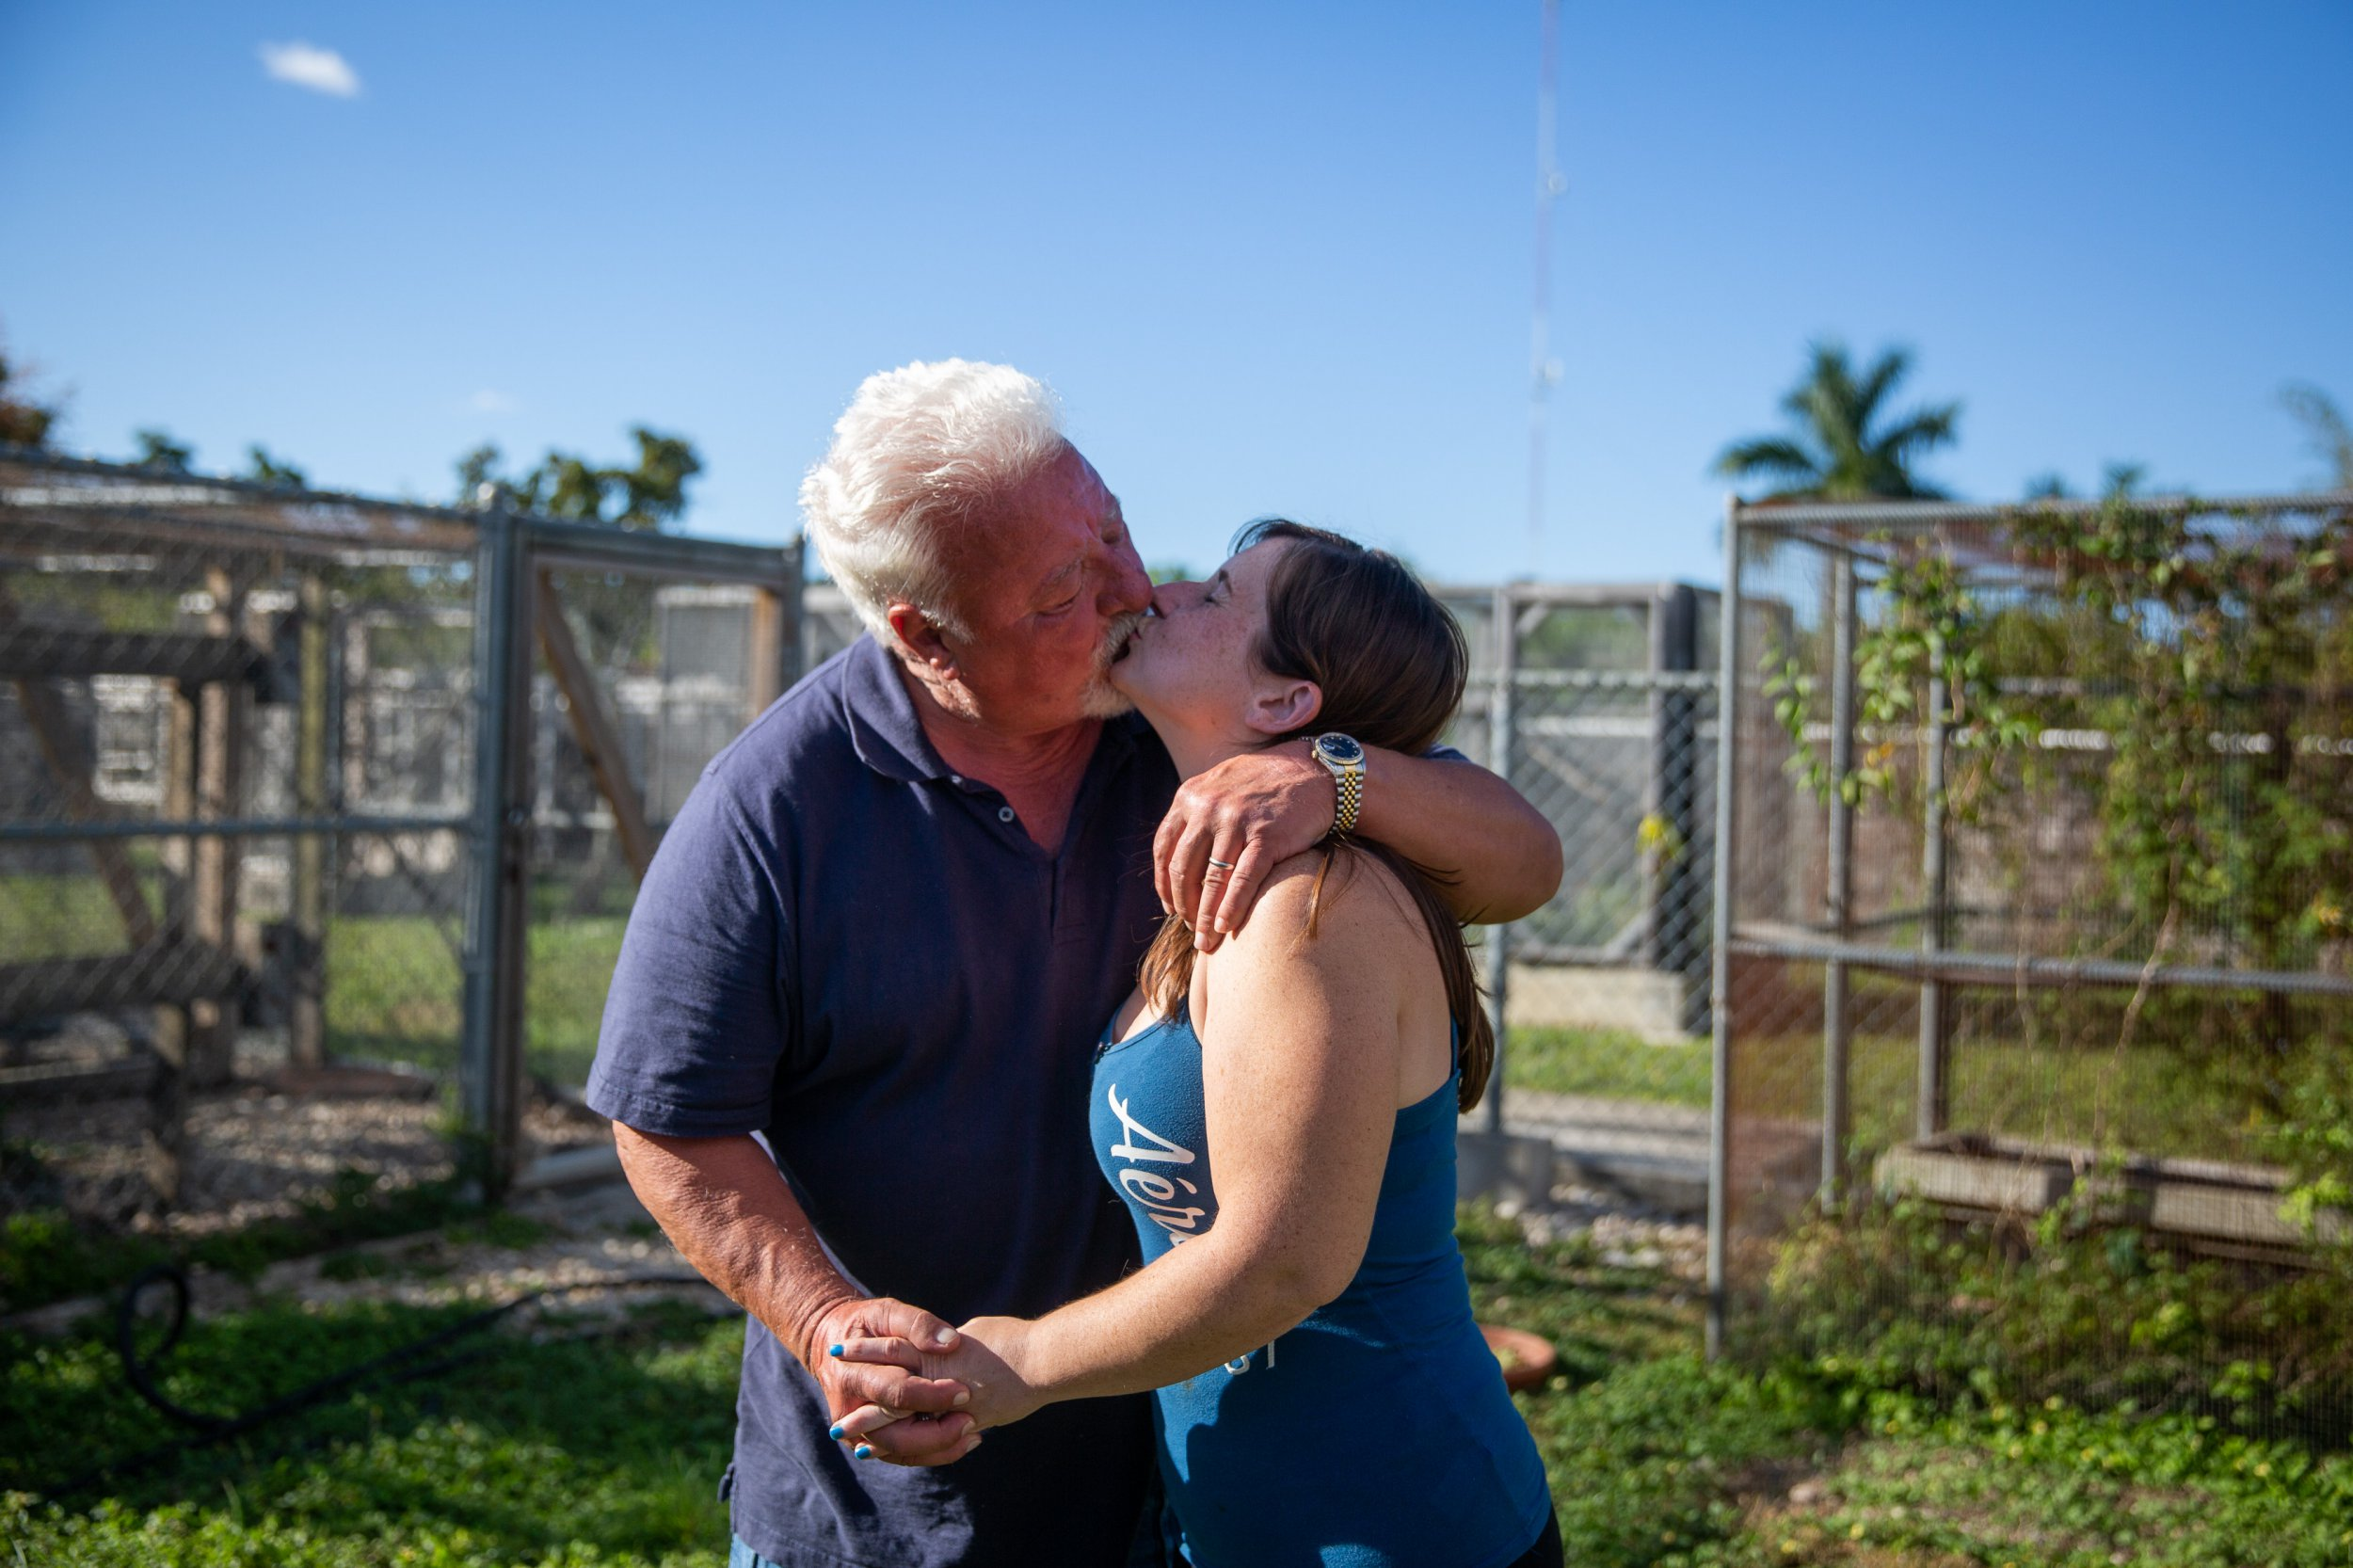 *** EXCLUSIVE - VIDEO AVAILABLE *** HOMESTEAD, FLORIDA - FEBRUARY 28: Husband and wife Tom and Stacey Crutchfield, who have a 32-year age gap, share a kiss among their reptile enclosures on February 28, 2019 in Homestead, Florida. A MARRIED couple with a 32 age gap say that their difference in age is no issue. Tom Crutchfield is 70 years old and has been with his 37-year-old beloved, Stacey, for almost four years. The couple got to know each other when Stacey began working on Tom?s reptile farm in Homestead, Florida, where the pair now live and work together. PHOTOGRAPH BY Adam Gray / Barcroft Images